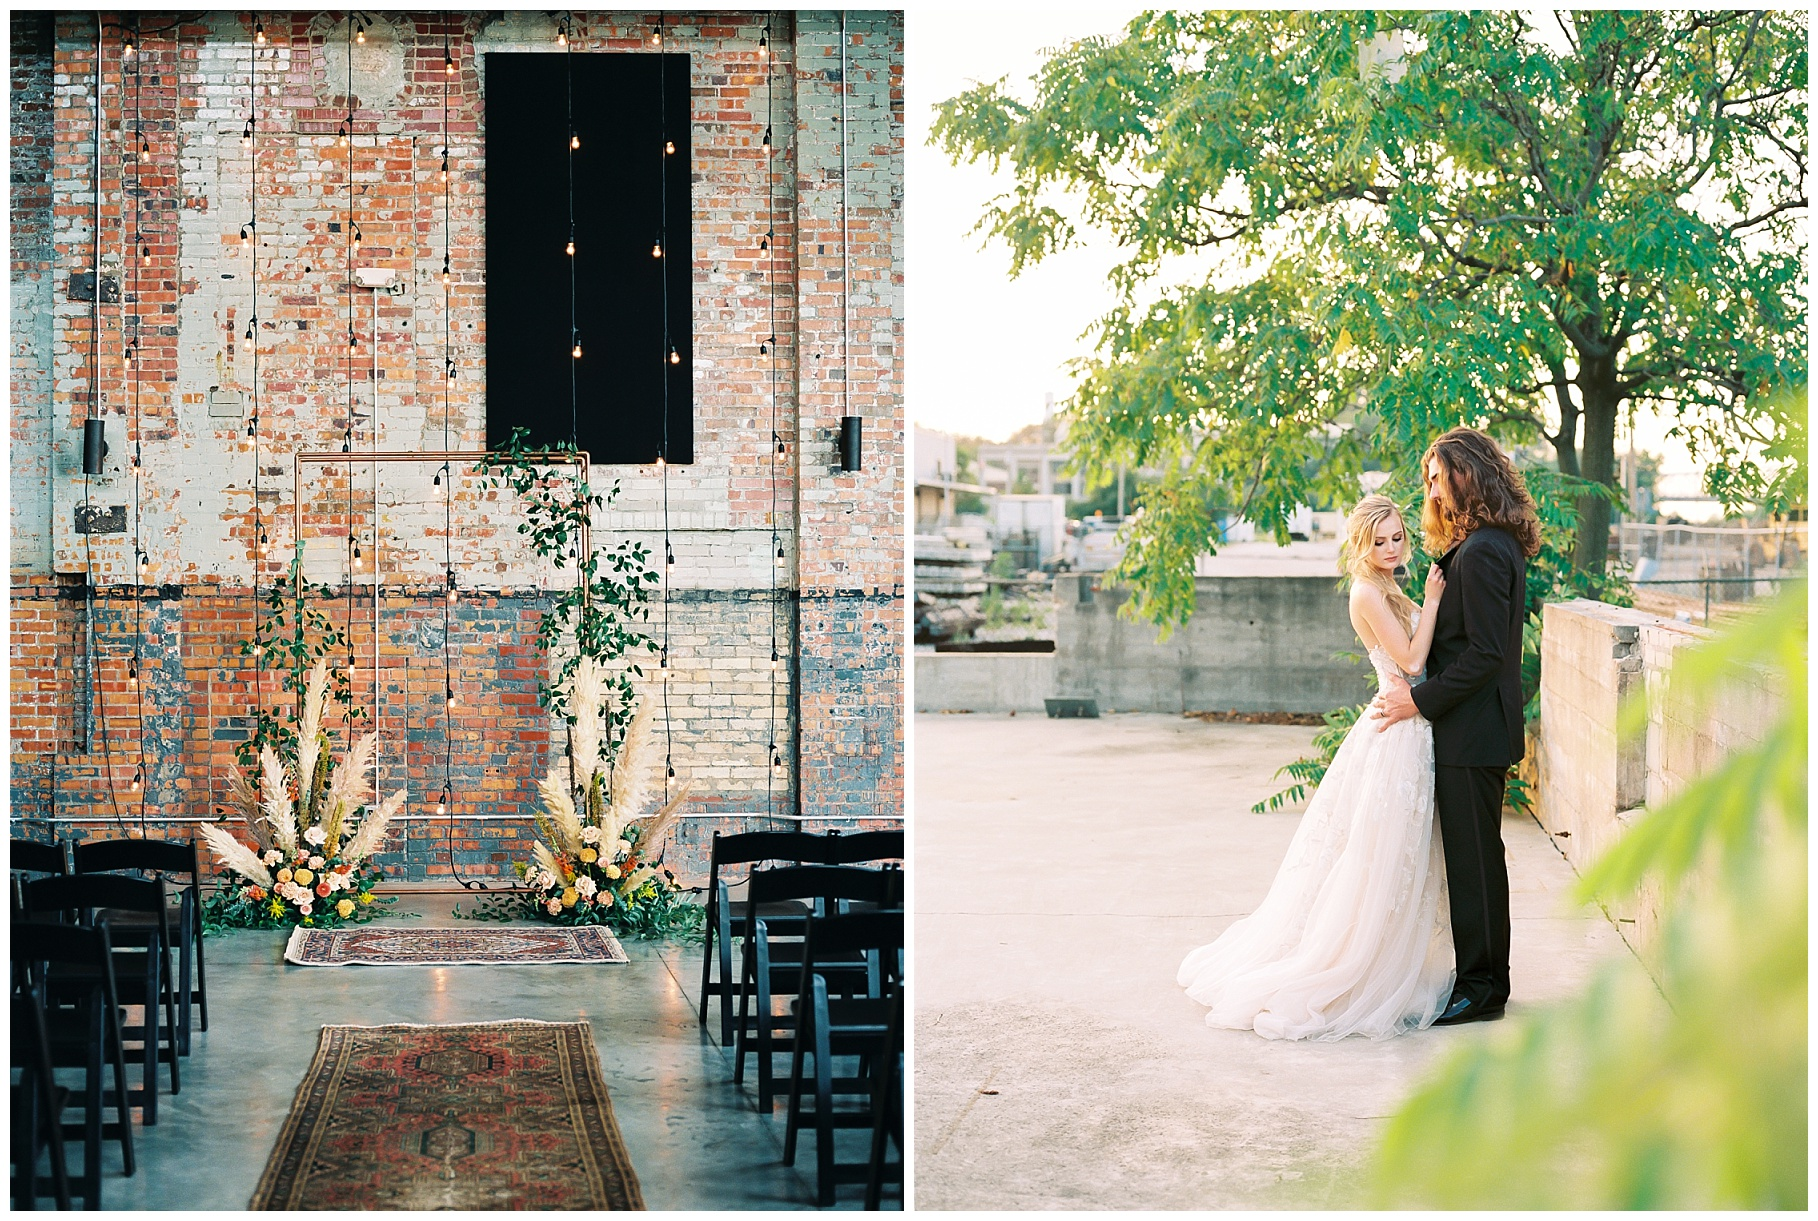 Urban Romance Wedding with Copper Accents at The Millbottom by Kelsi Kliethermes Photography Best Columbia Missouri Wedding Photographer_0028.jpg